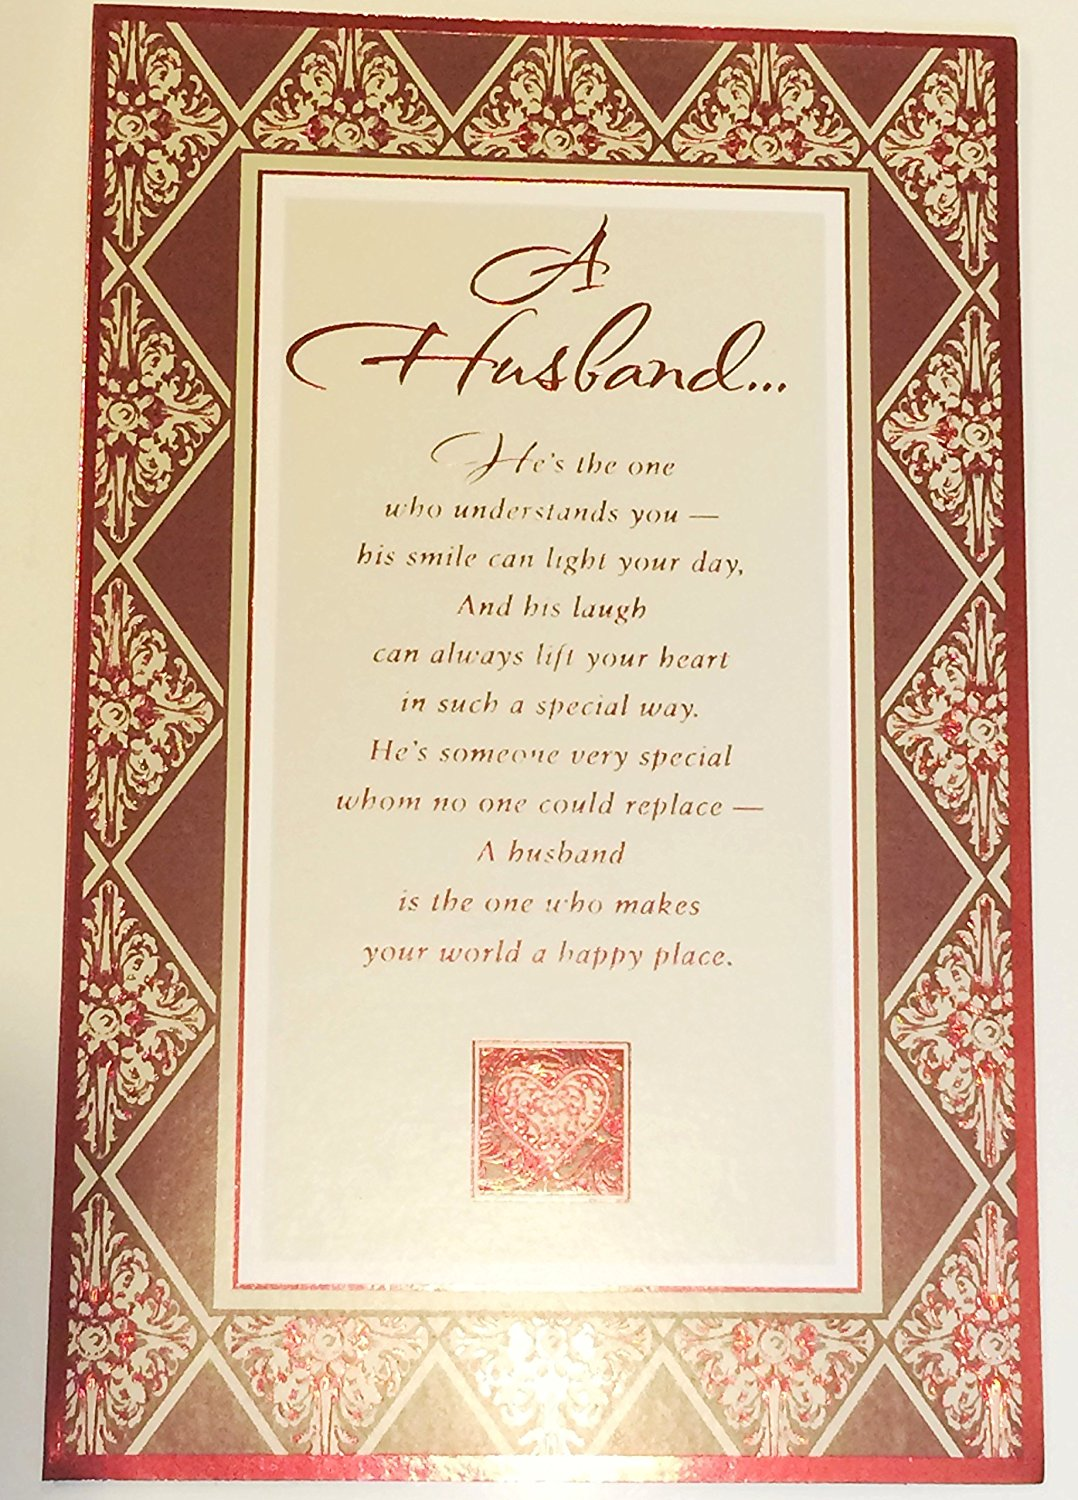 Wedding invitations american greetings picture ideas references wedding invitations american greetings american greetings each get quotations valentine card to husband a husband he kristyandbryce Images